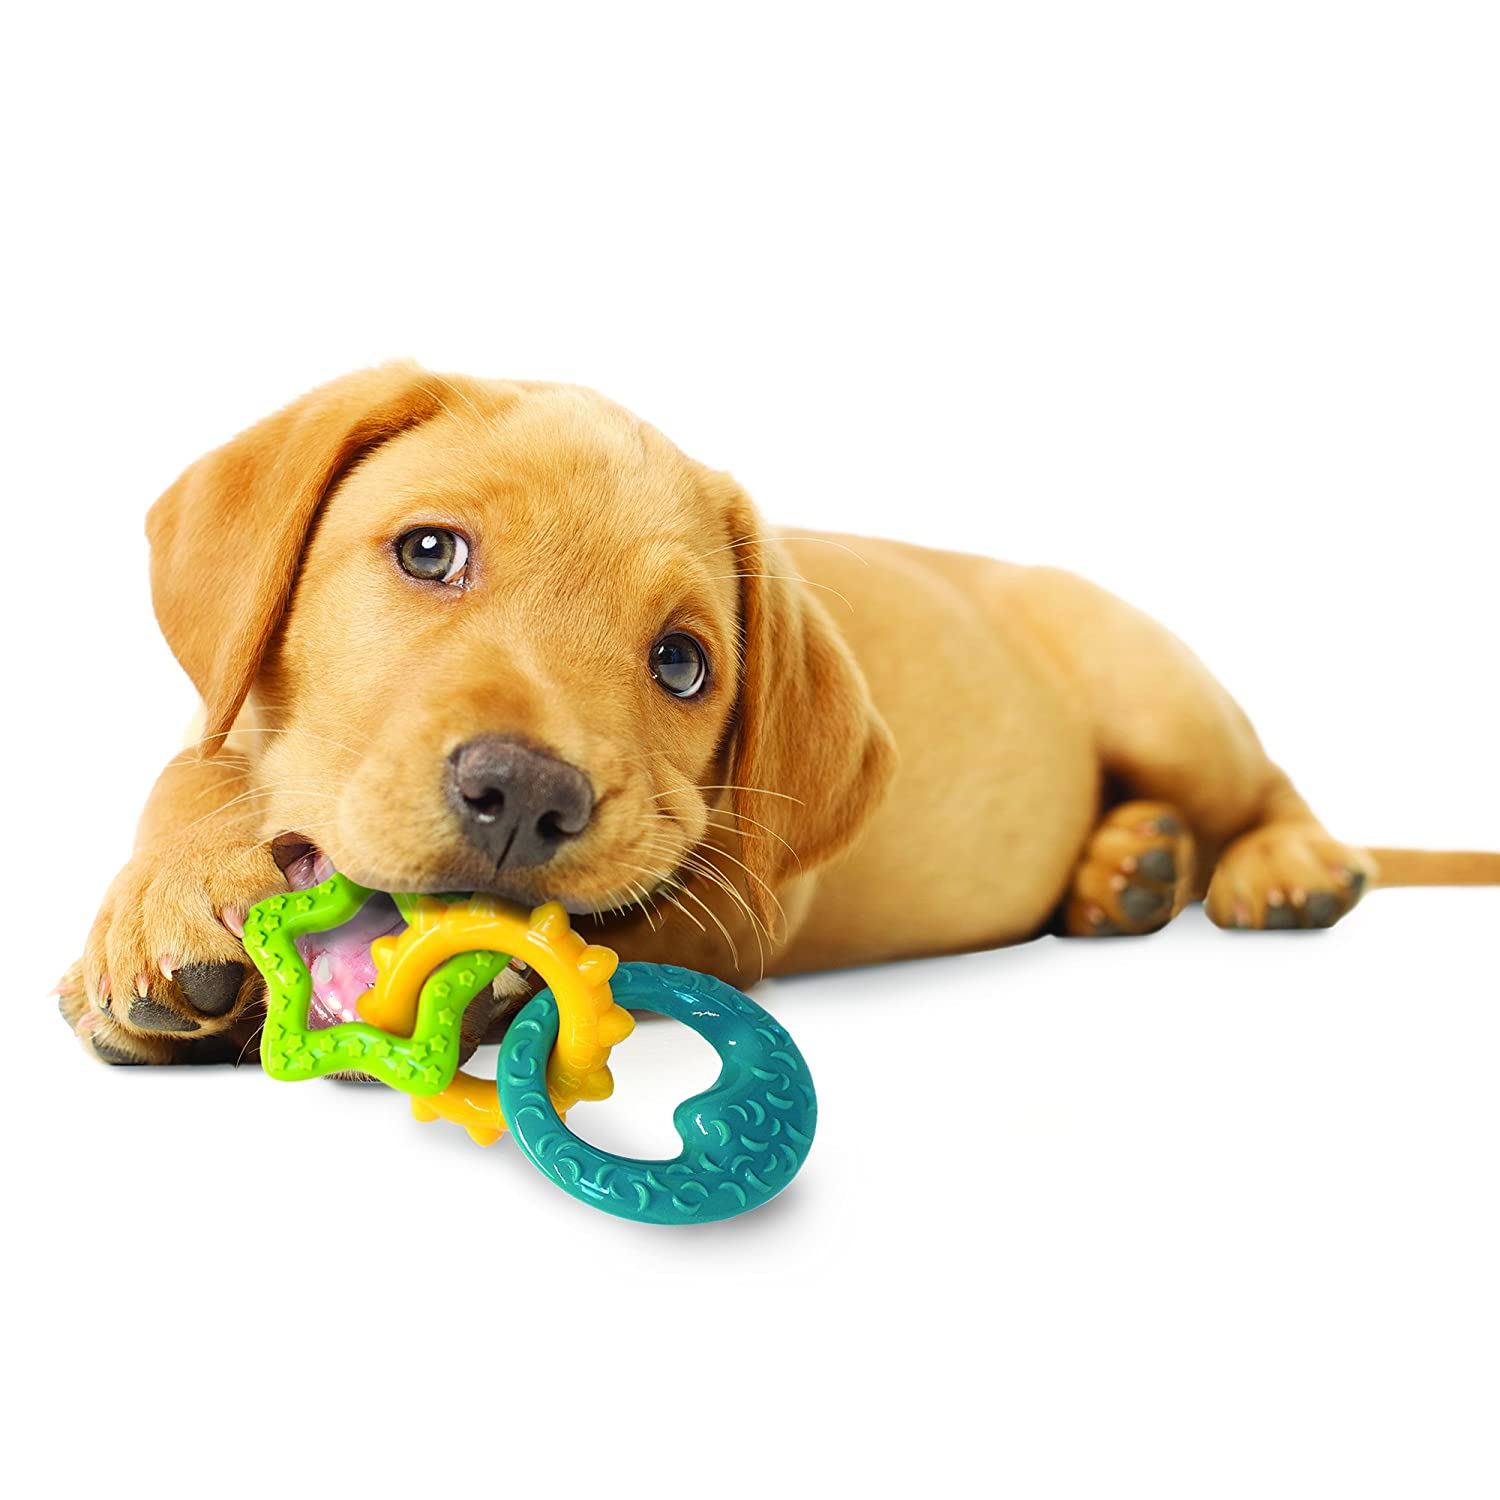 Buy Nylabone Just for Puppies Ring Bone Puppy Dog Teething Chew